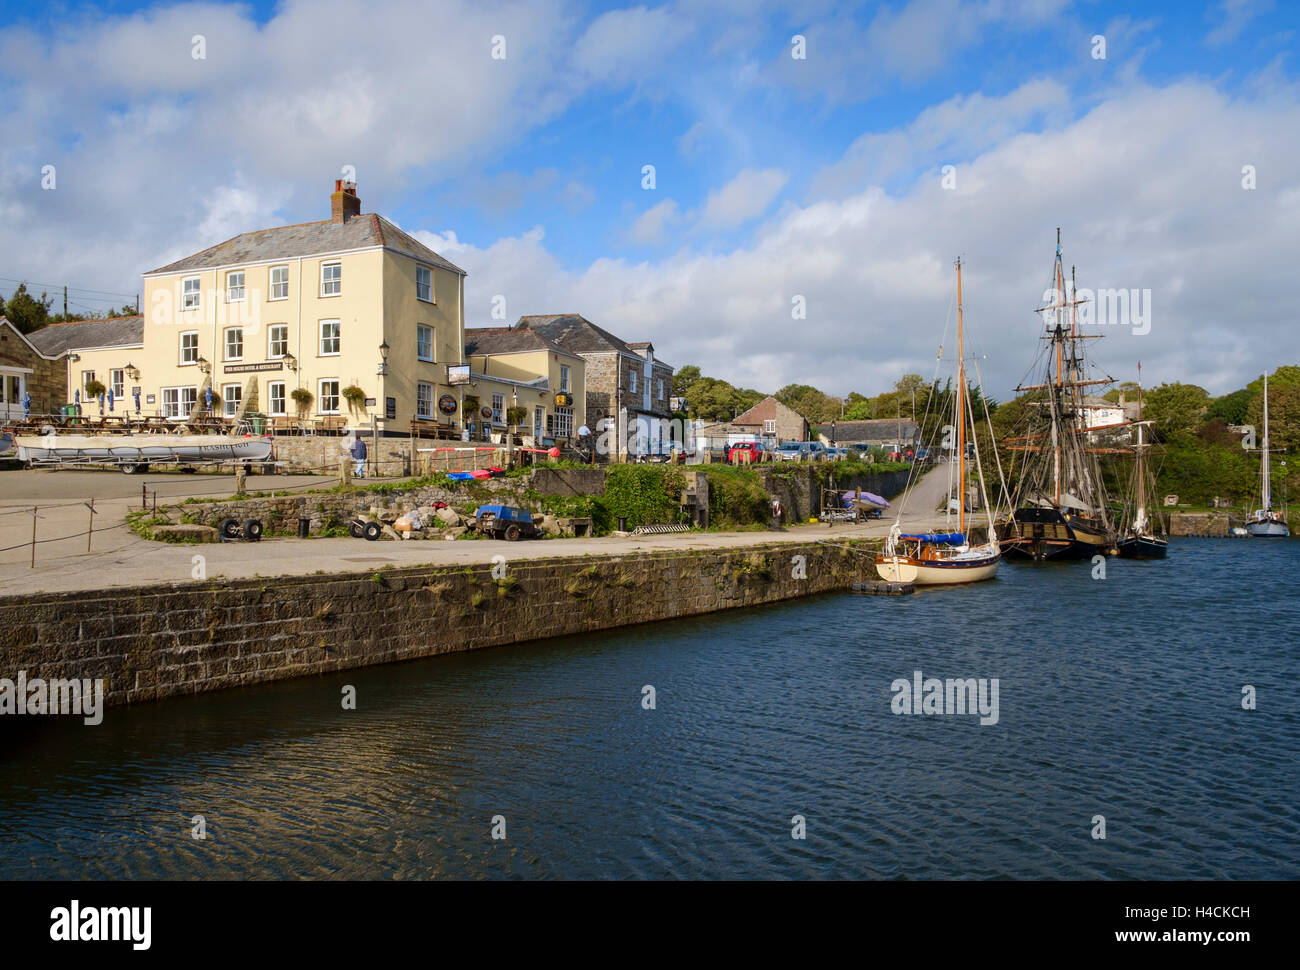 Tall ships moored in Charlestown Harbour, Cornwall, England, UK - Stock Image